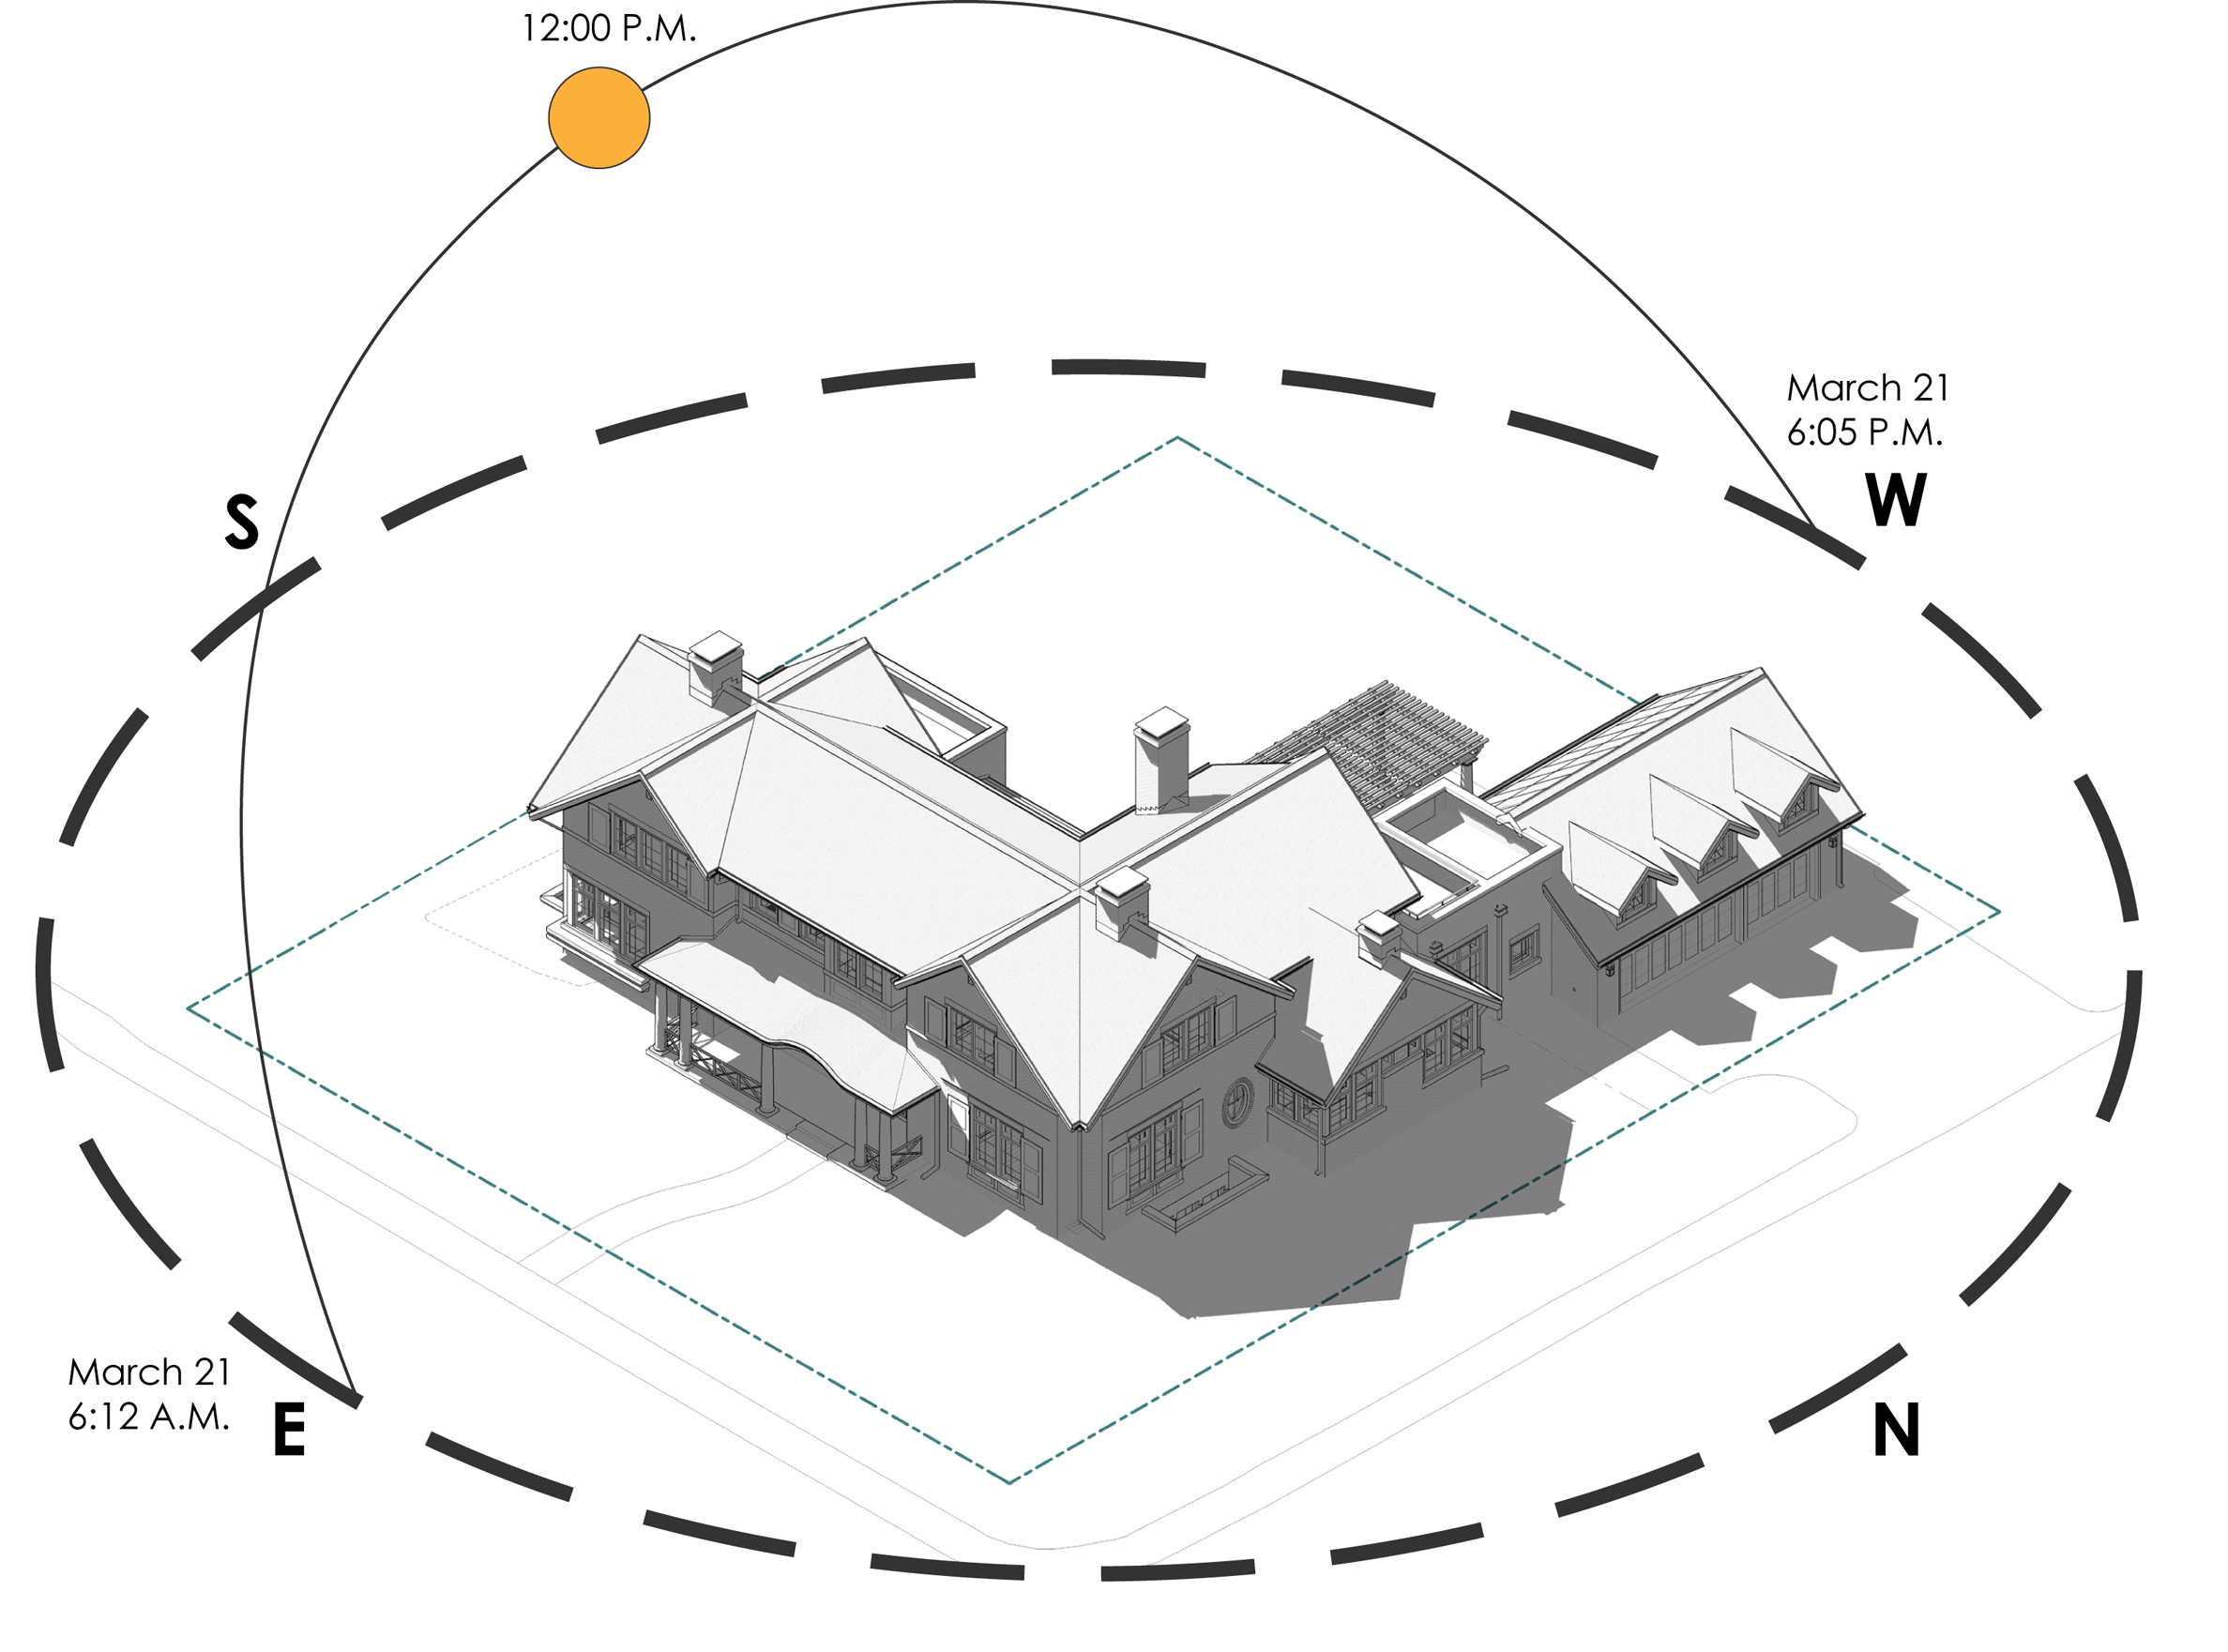 Using Building Information Modeling we can study the amount of daylight the project will receive in order to maximize the amount of natural light. Coupled with